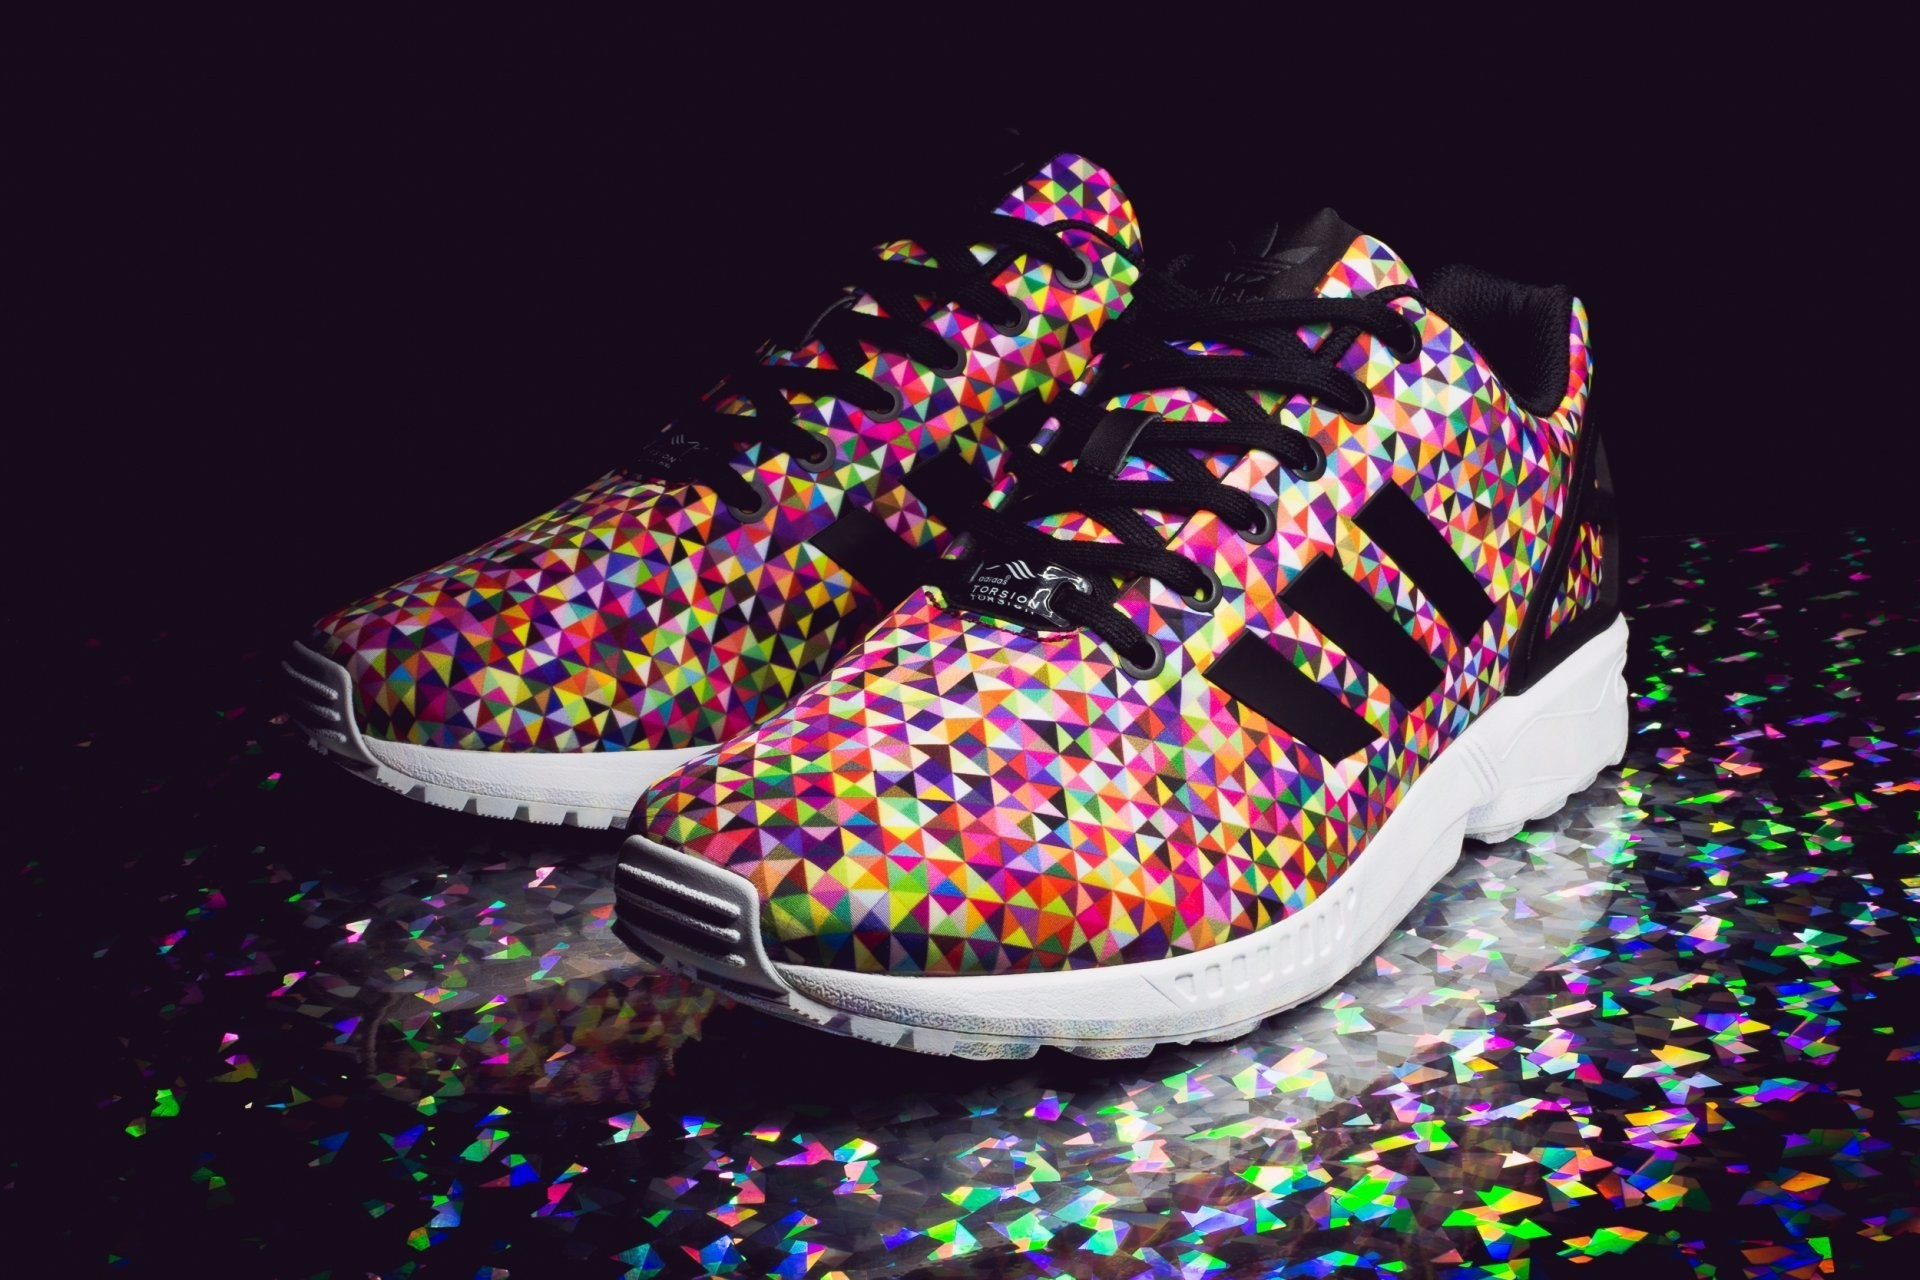 Res: 1920x1280, Adidas Shoes Wallpaper Hd Images Original Image High Definition Amazing For  Mobile Phones